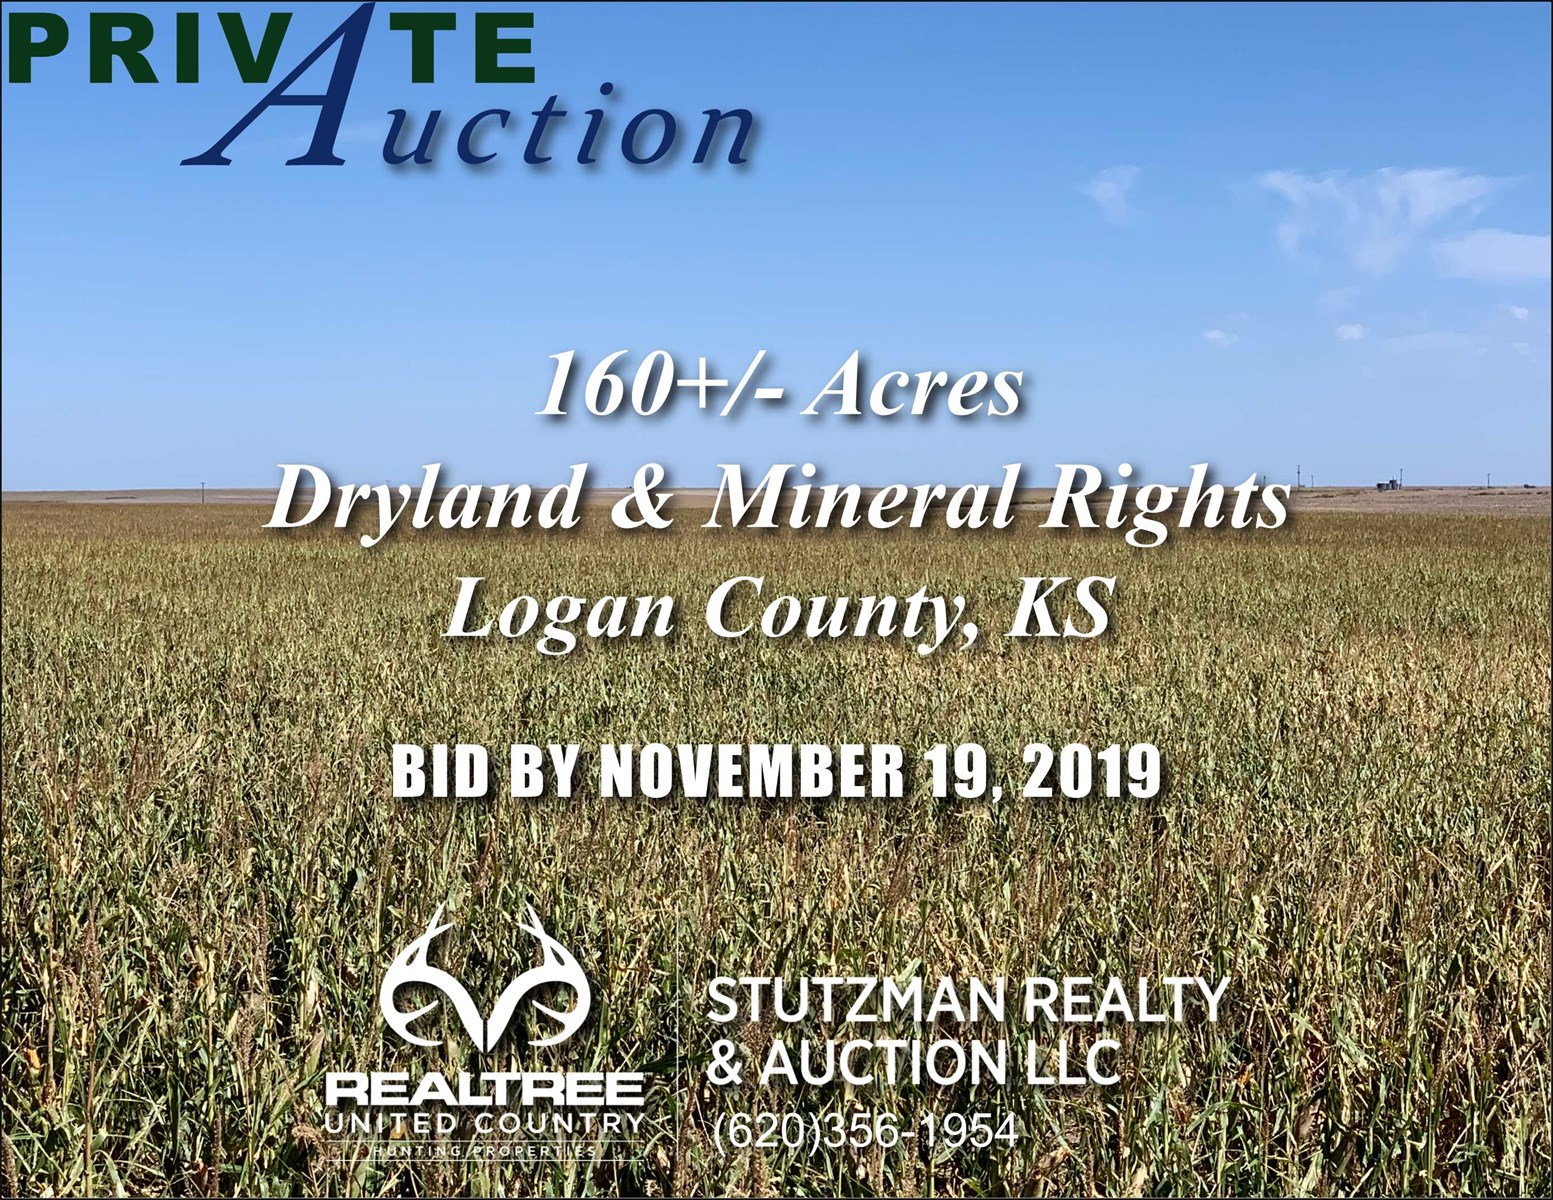 LOGAN COUNTY, KS ~ 160+/- ACRES DRYLAND & MINERAL RIGHTS